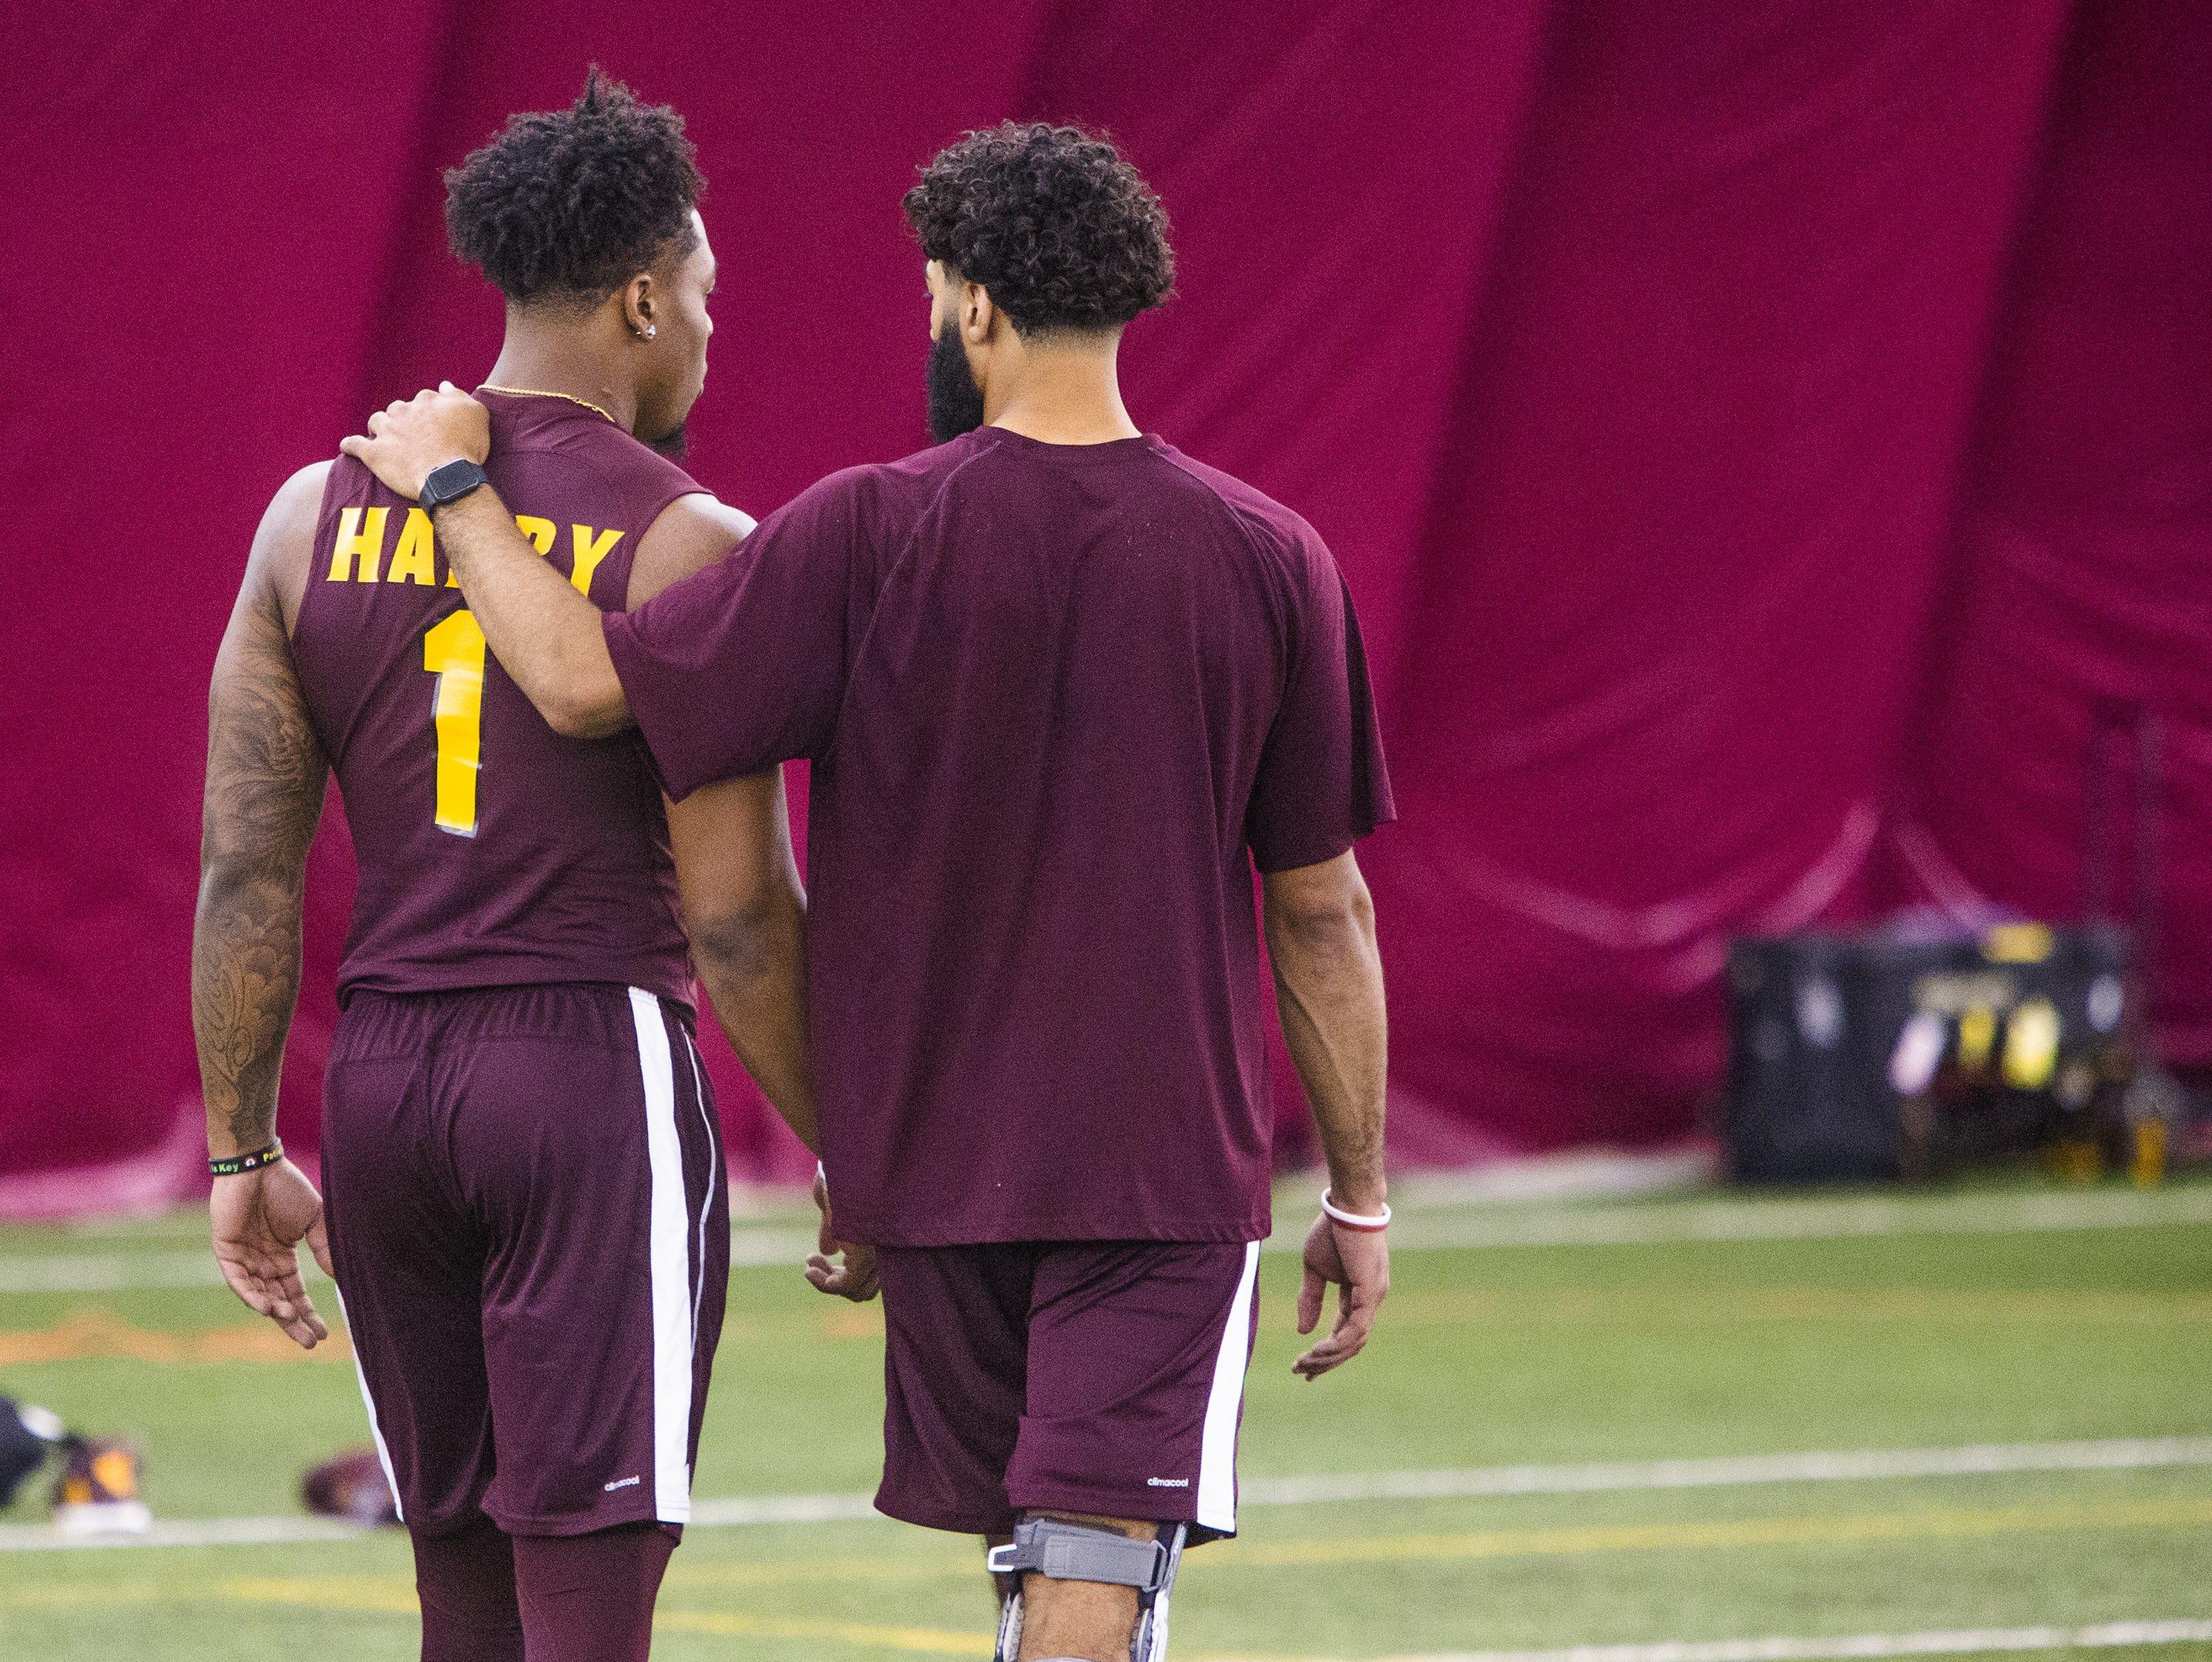 Former Arizona State University wide receiver N'Keal Harry and quarterback Manny Wilkins, Jr., right, share a private moment at the 2019 Football Pro Day held on campus, Wednesday, March 27, 2019.